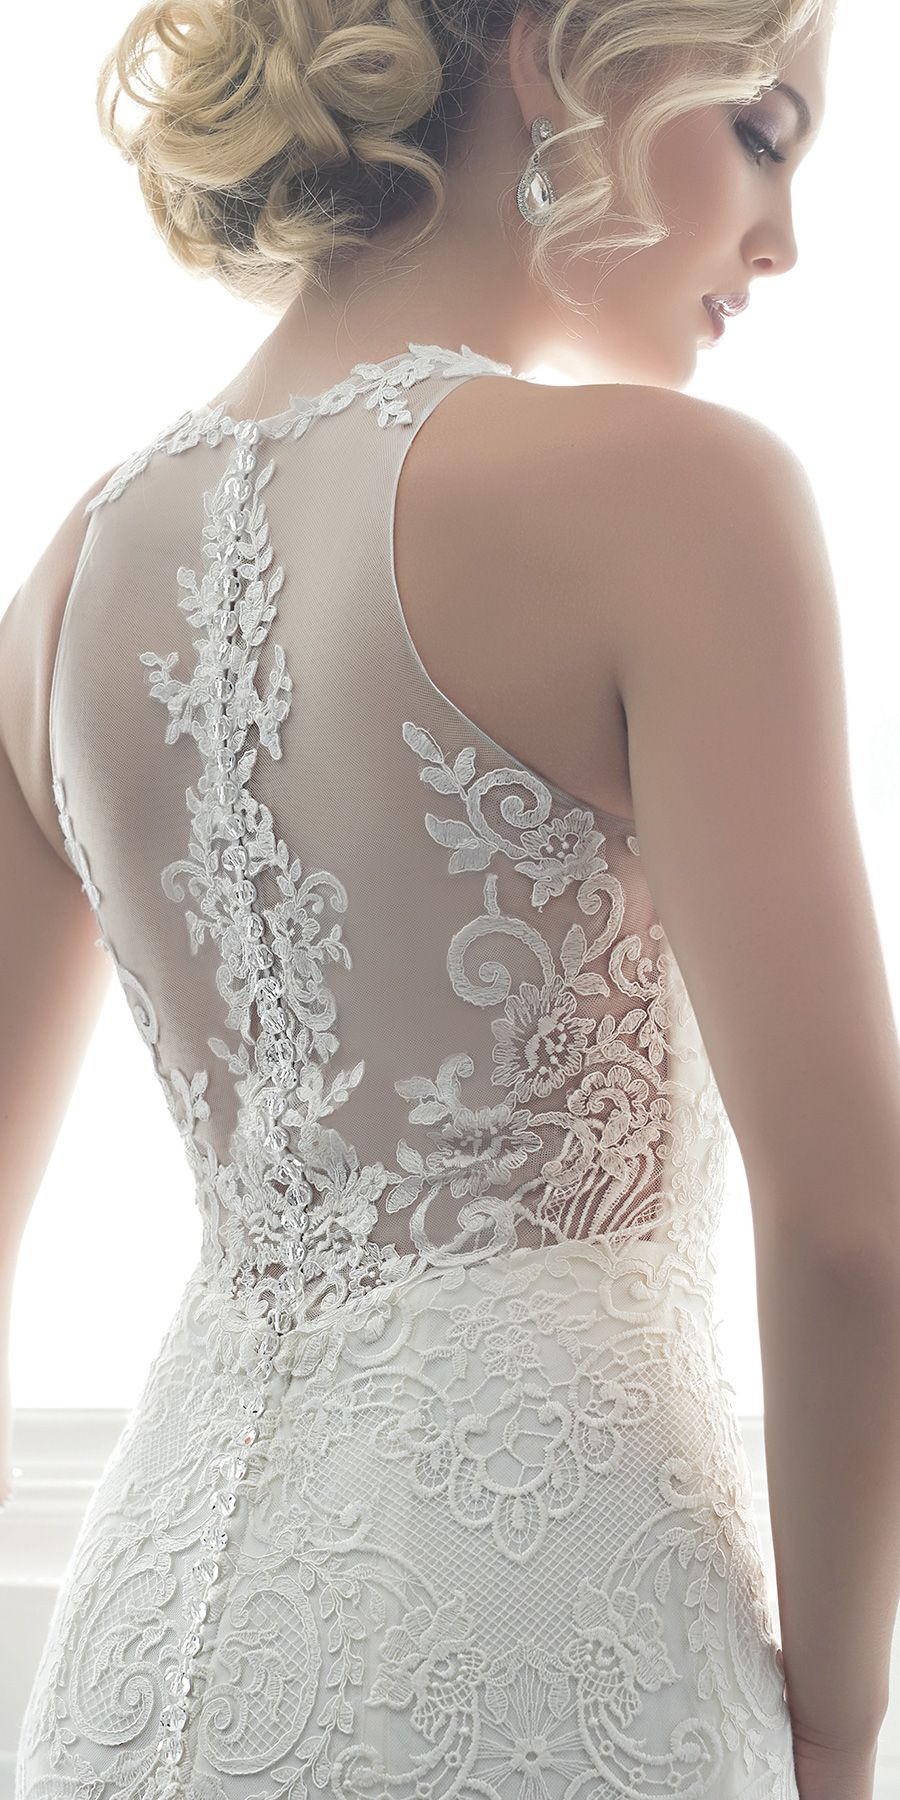 Style 15620 by Christina Wu Brides is all about the stunning floral lace and showstopping illusion back! @houseofwubrands #ChristinaWuBrides #ChristinaWu #HouseofWu #wedding #bridal #ad #weddingdress #romantic #mermaid #glambride